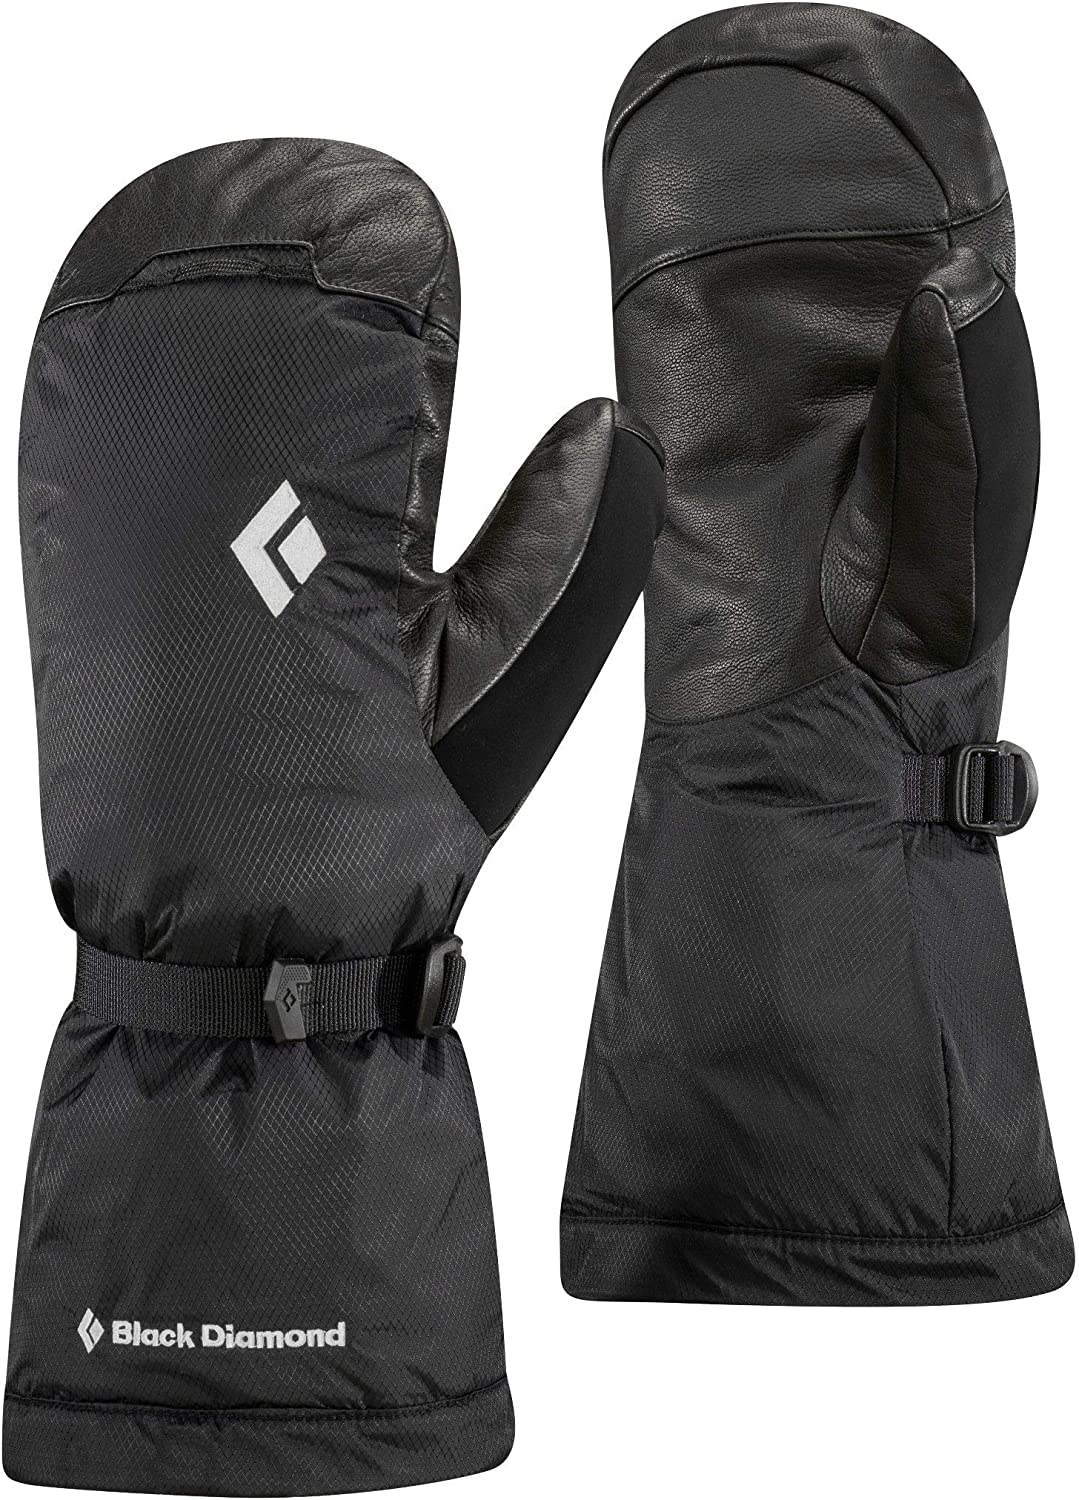 Black Diamond Absolute Mitts Cold Weather Gloves